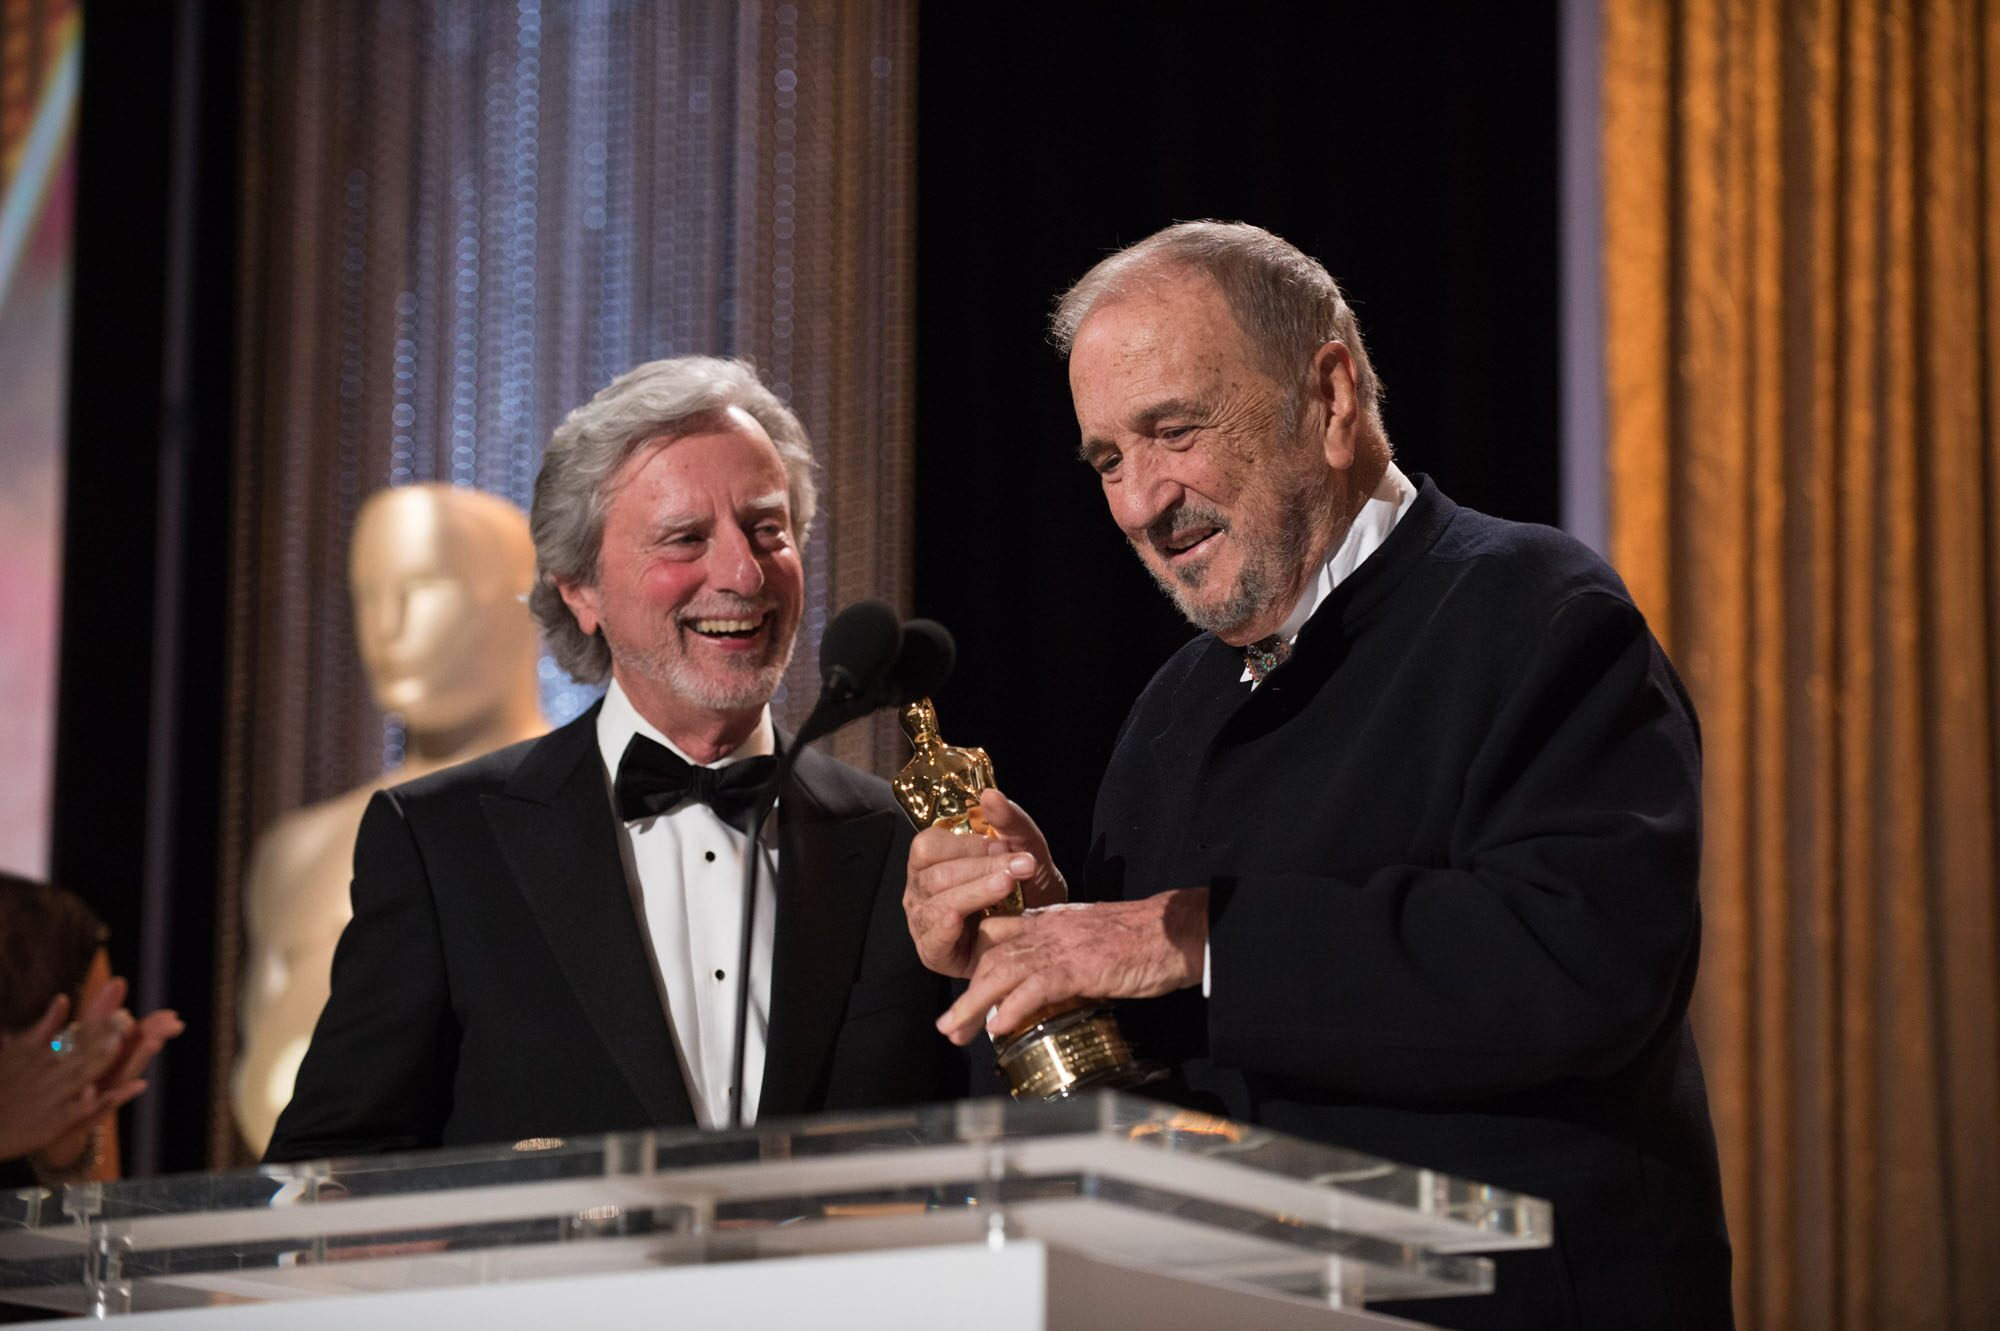 Oscar®-nominated writer Philip Kaufman (left) presents the Honorary Award to recipient Jean-Claude Carrière during the 2014 Governors Awards